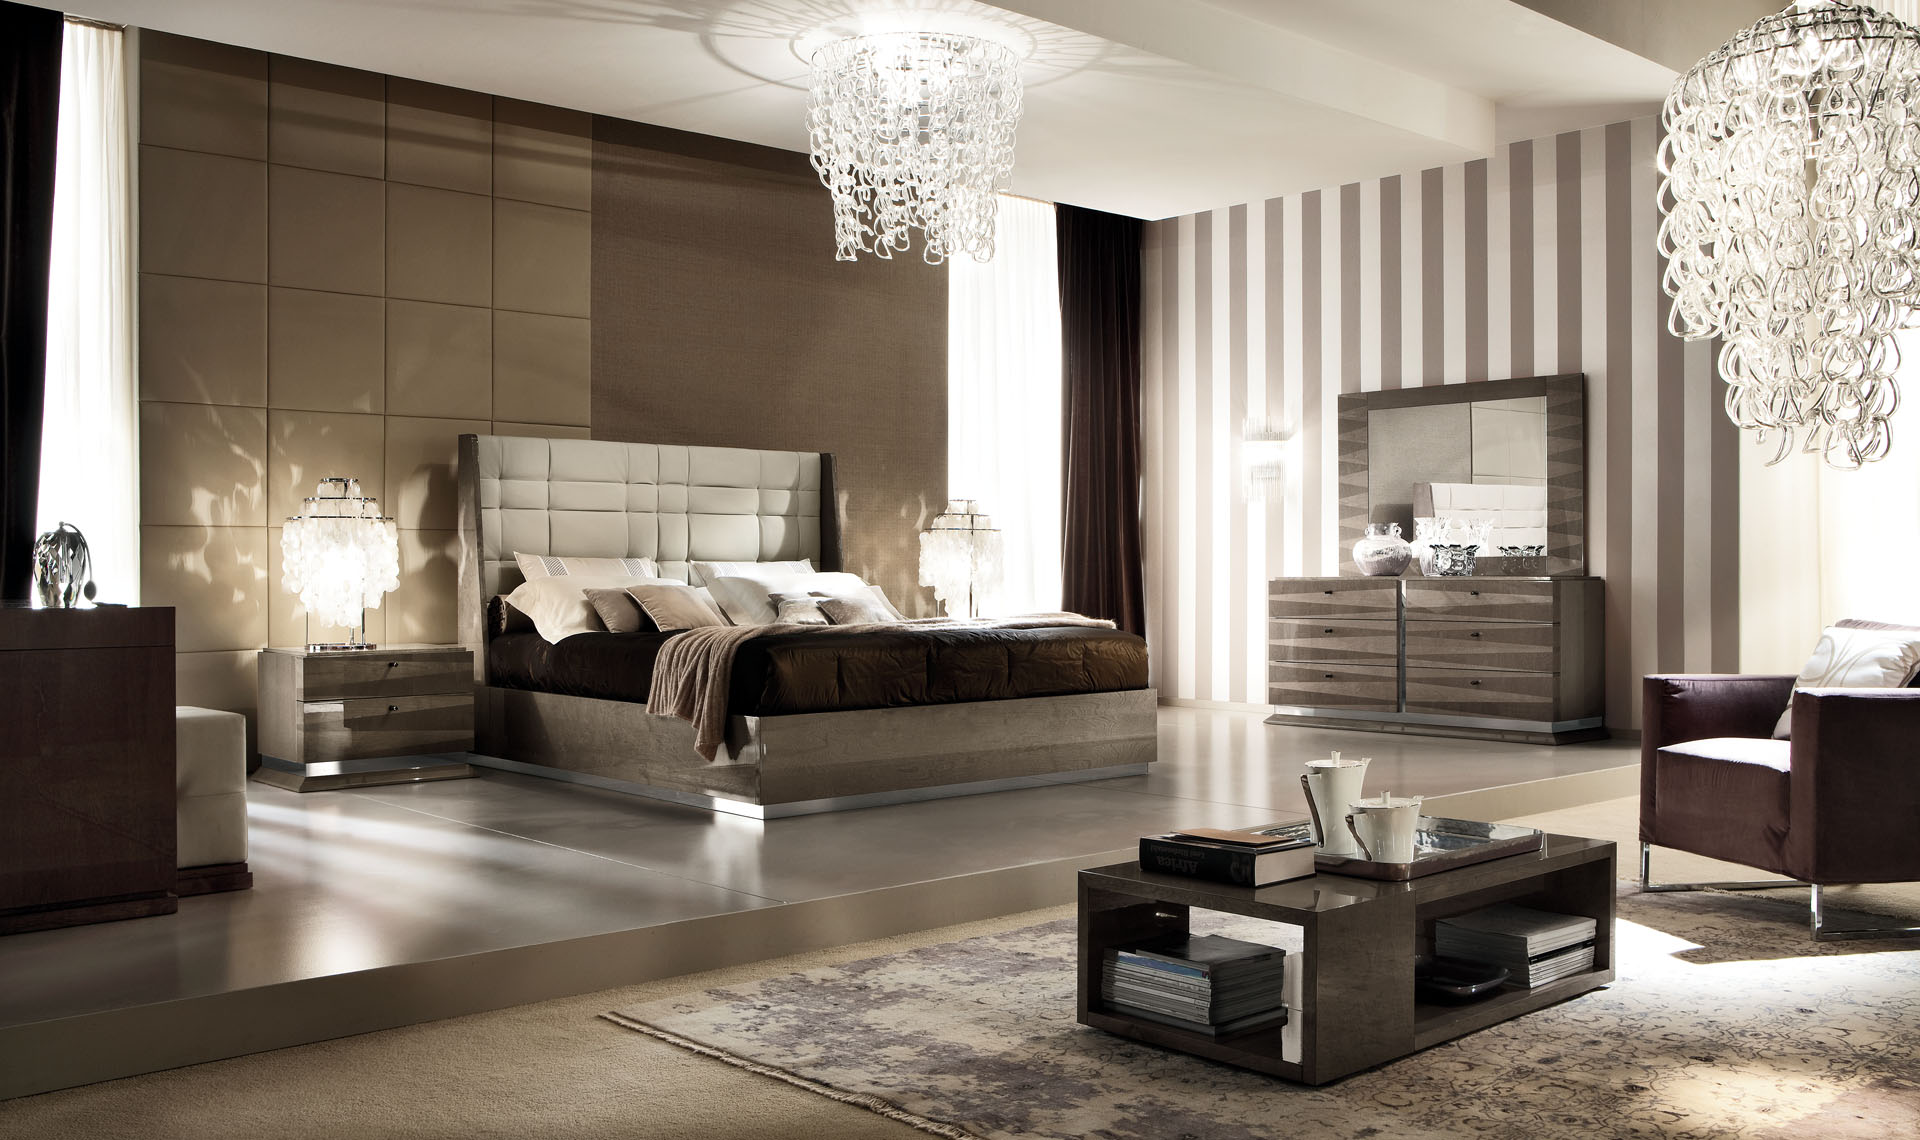 Monaco Bedroom Overview